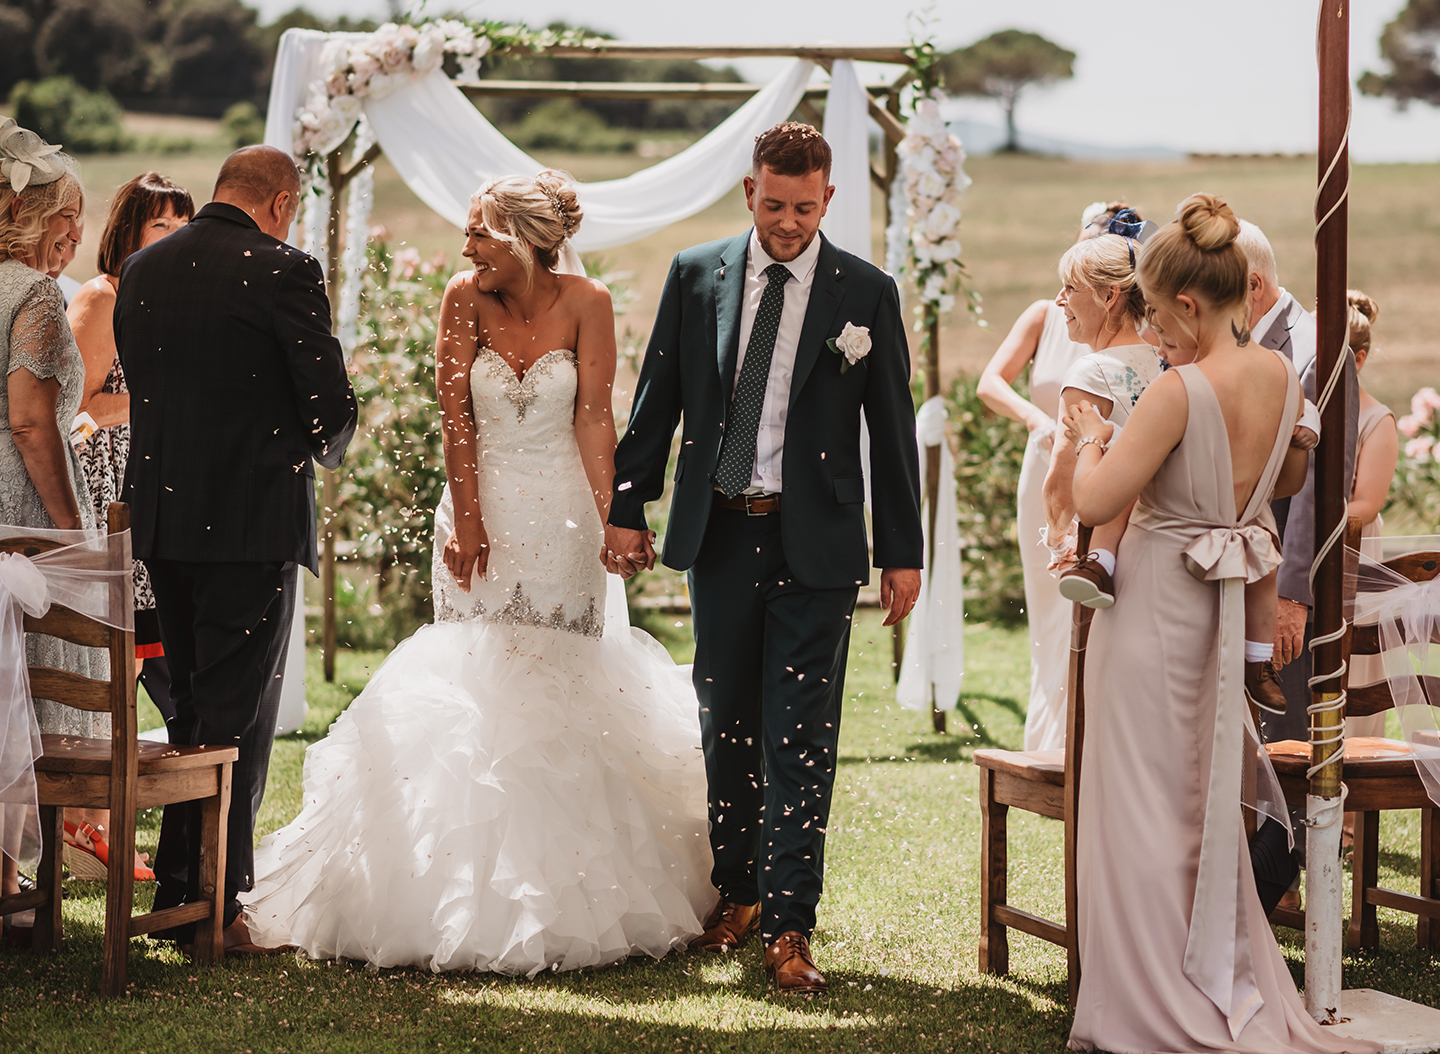 Marco Vegni Wedding Photographer Villa Montesoli